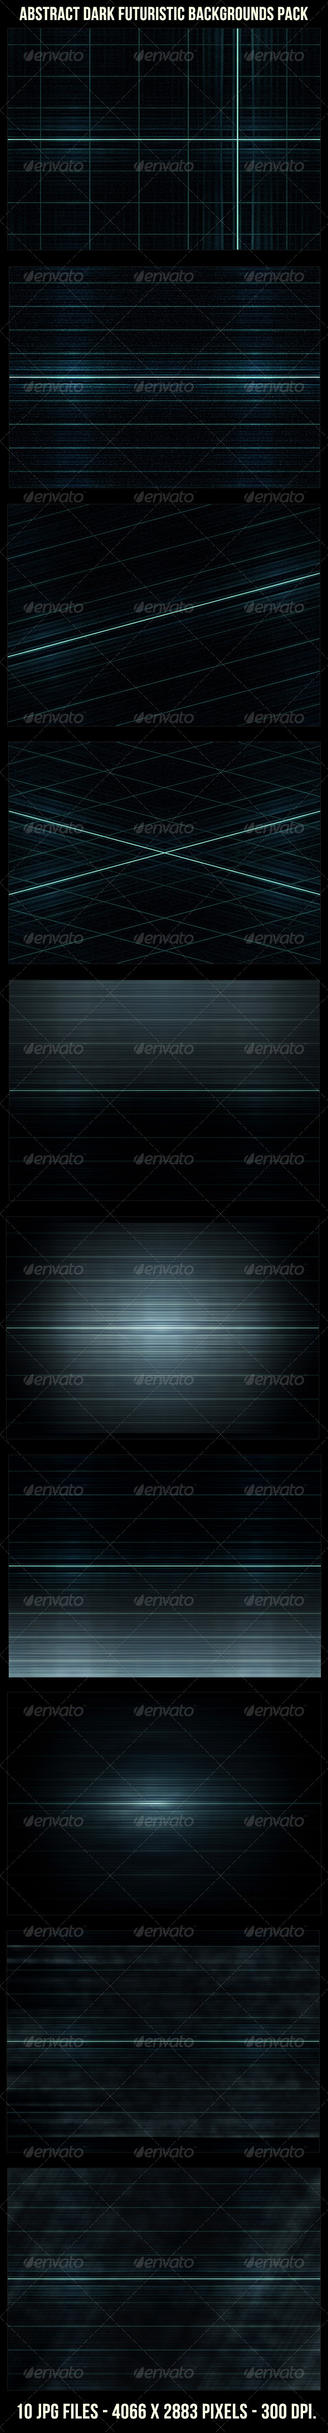 Abstract Futuristic Dark Backgrounds Pack by danfleites